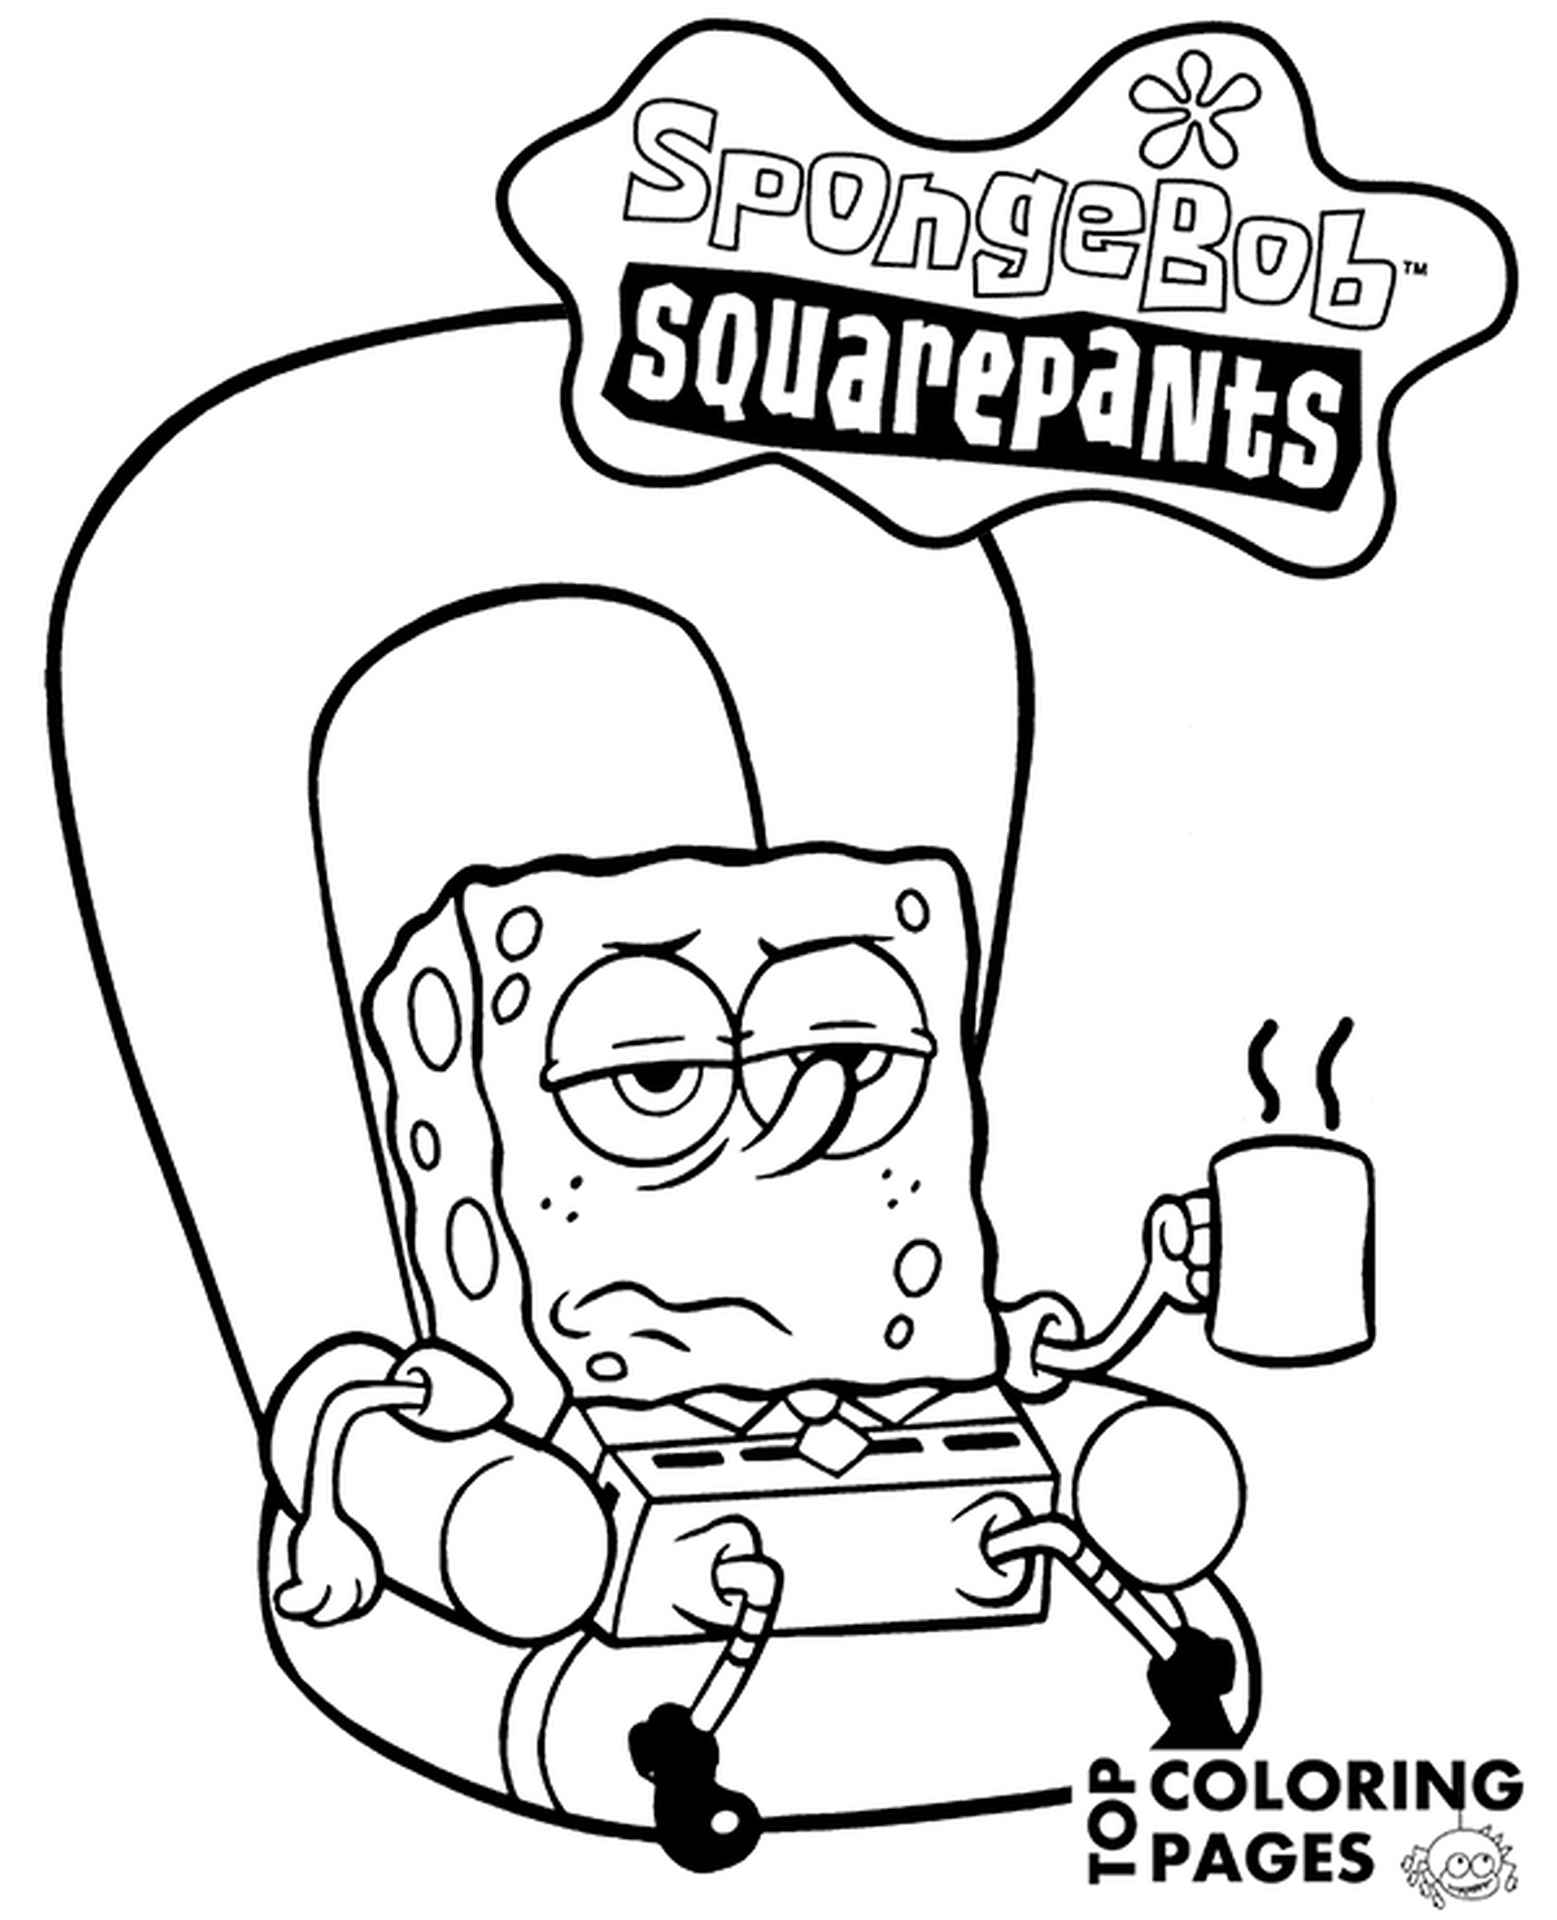 Spongebob Relaxed Drinking Coffee With Logo Coloring Page